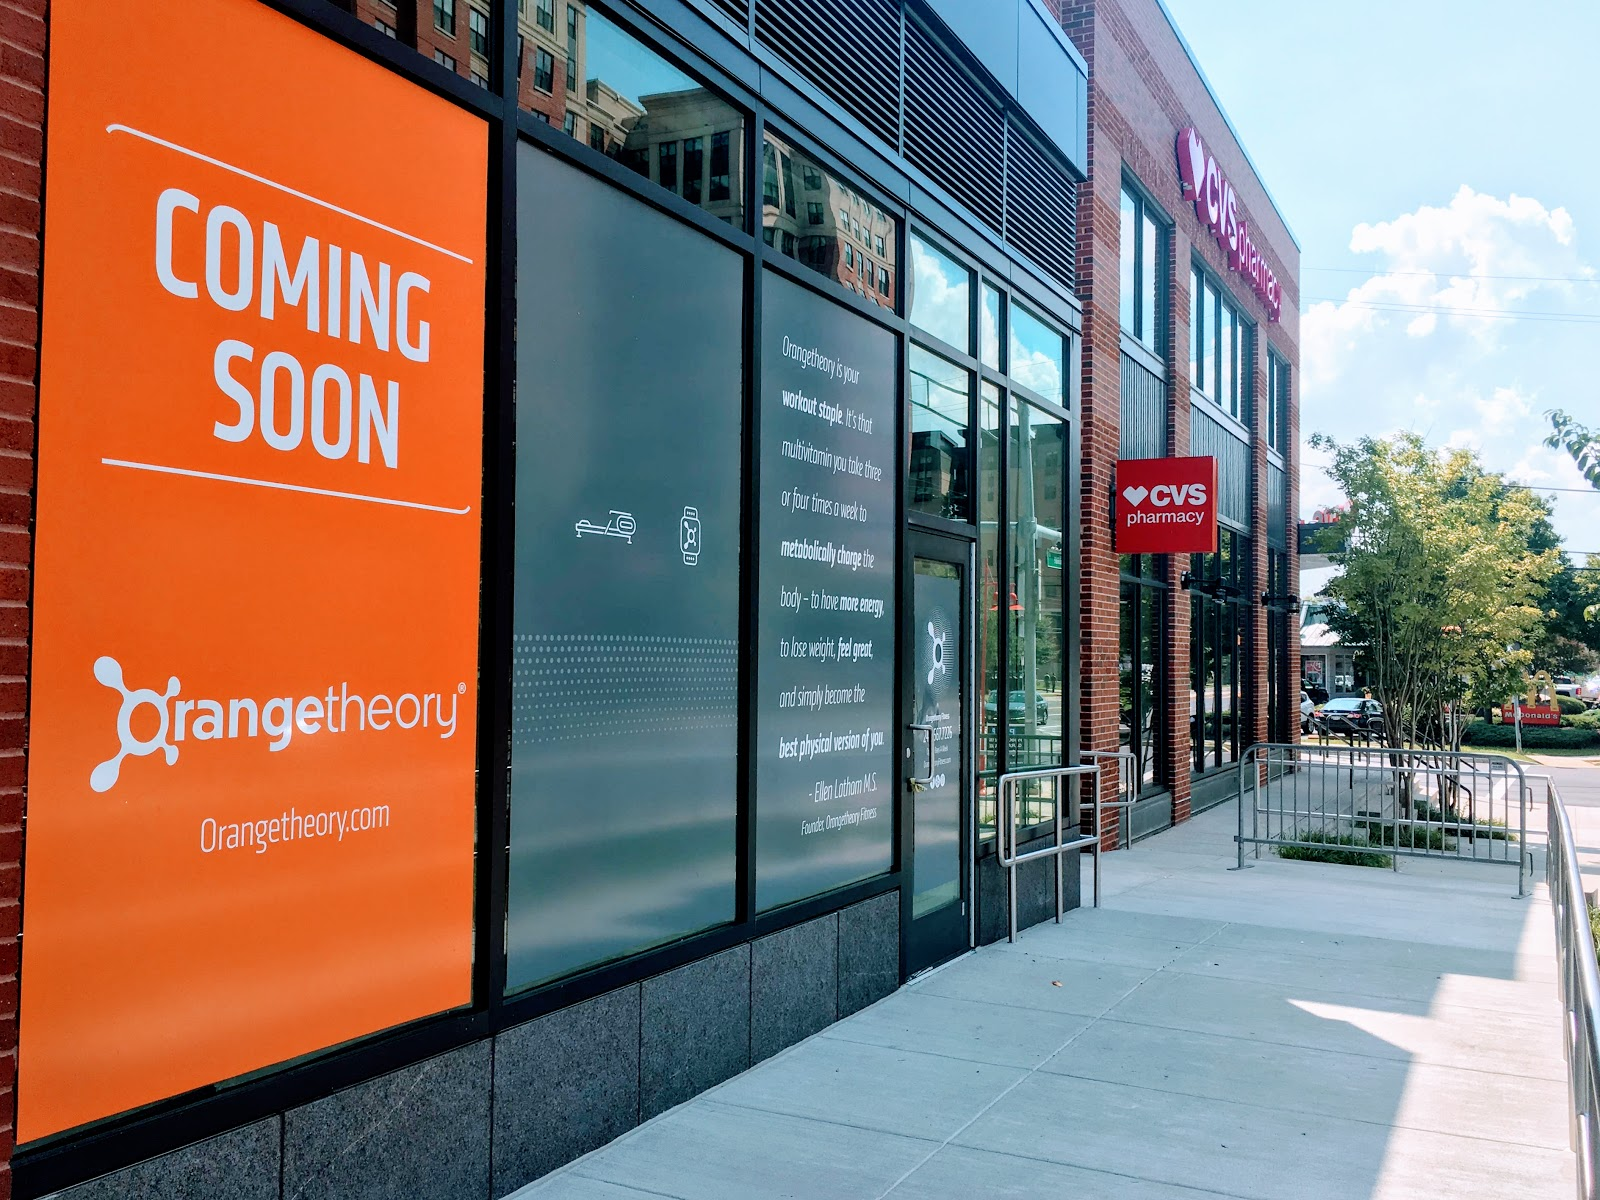 route one fun orangetheory fitness coming to college park